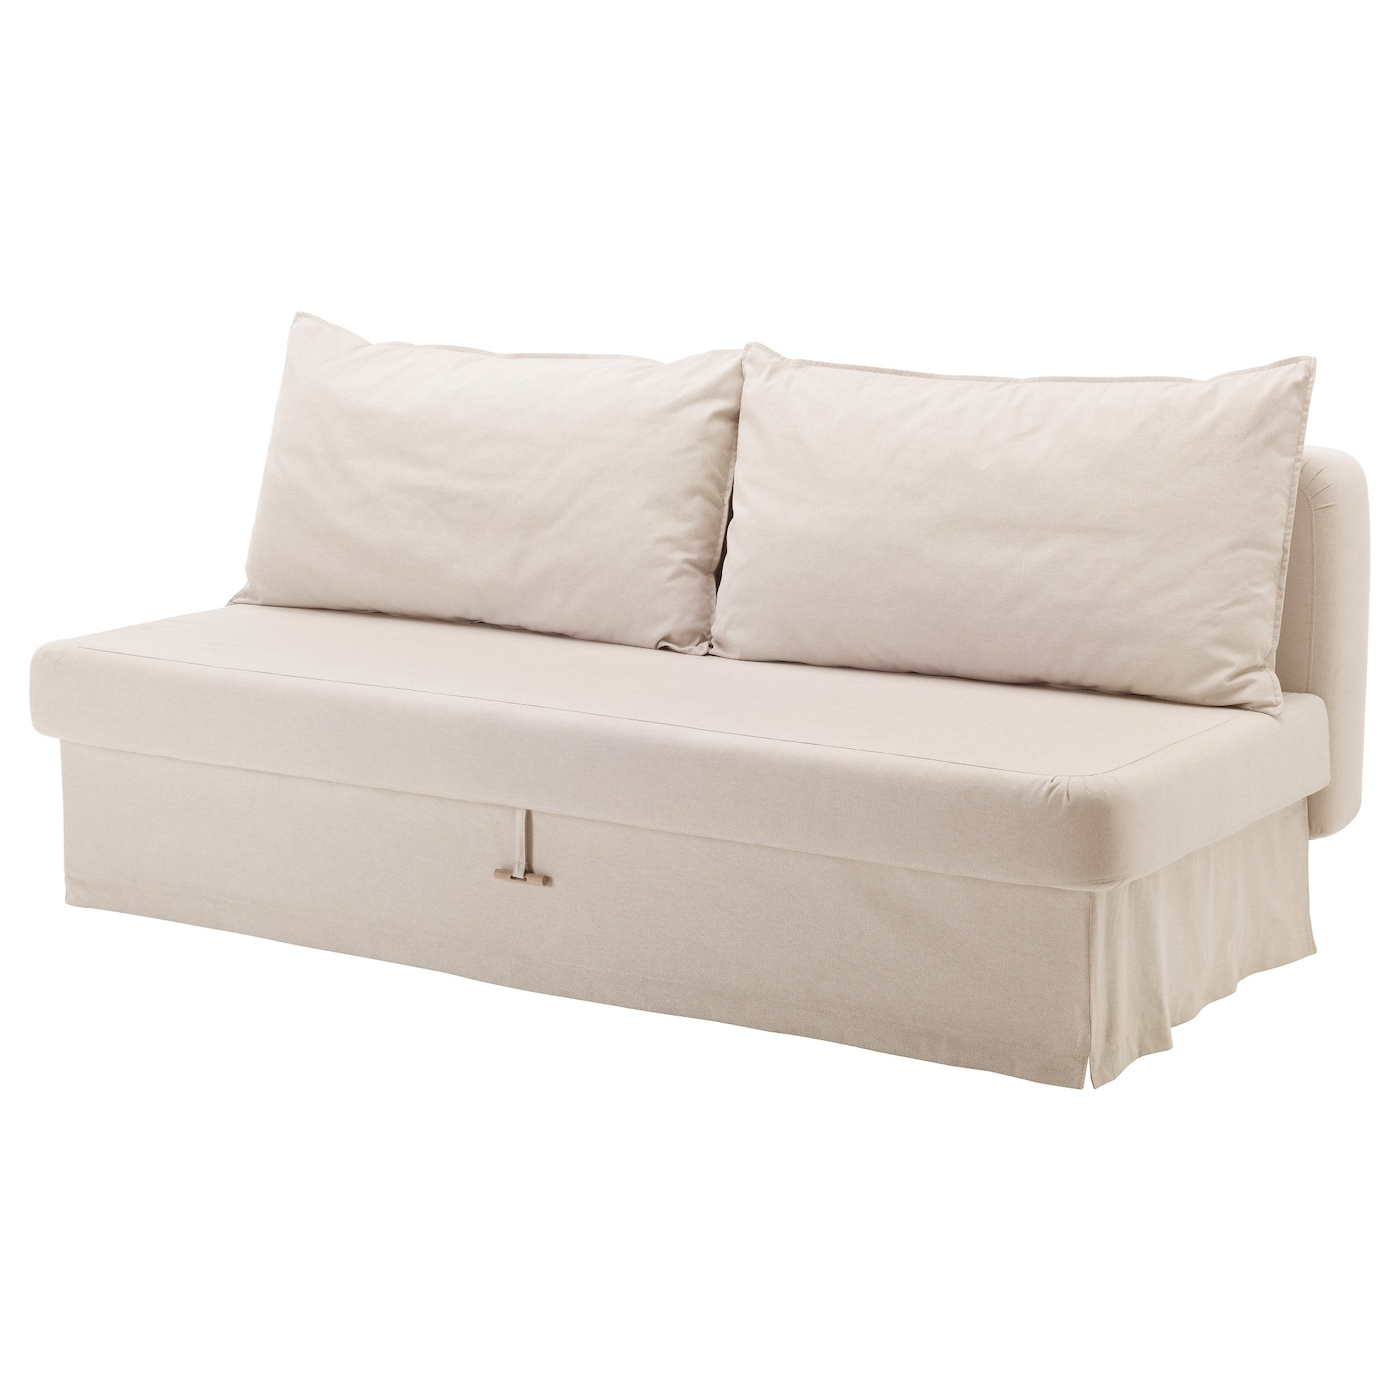 Himmene three seat sofa bed lofallet beige ikea for Sofa bed zuza